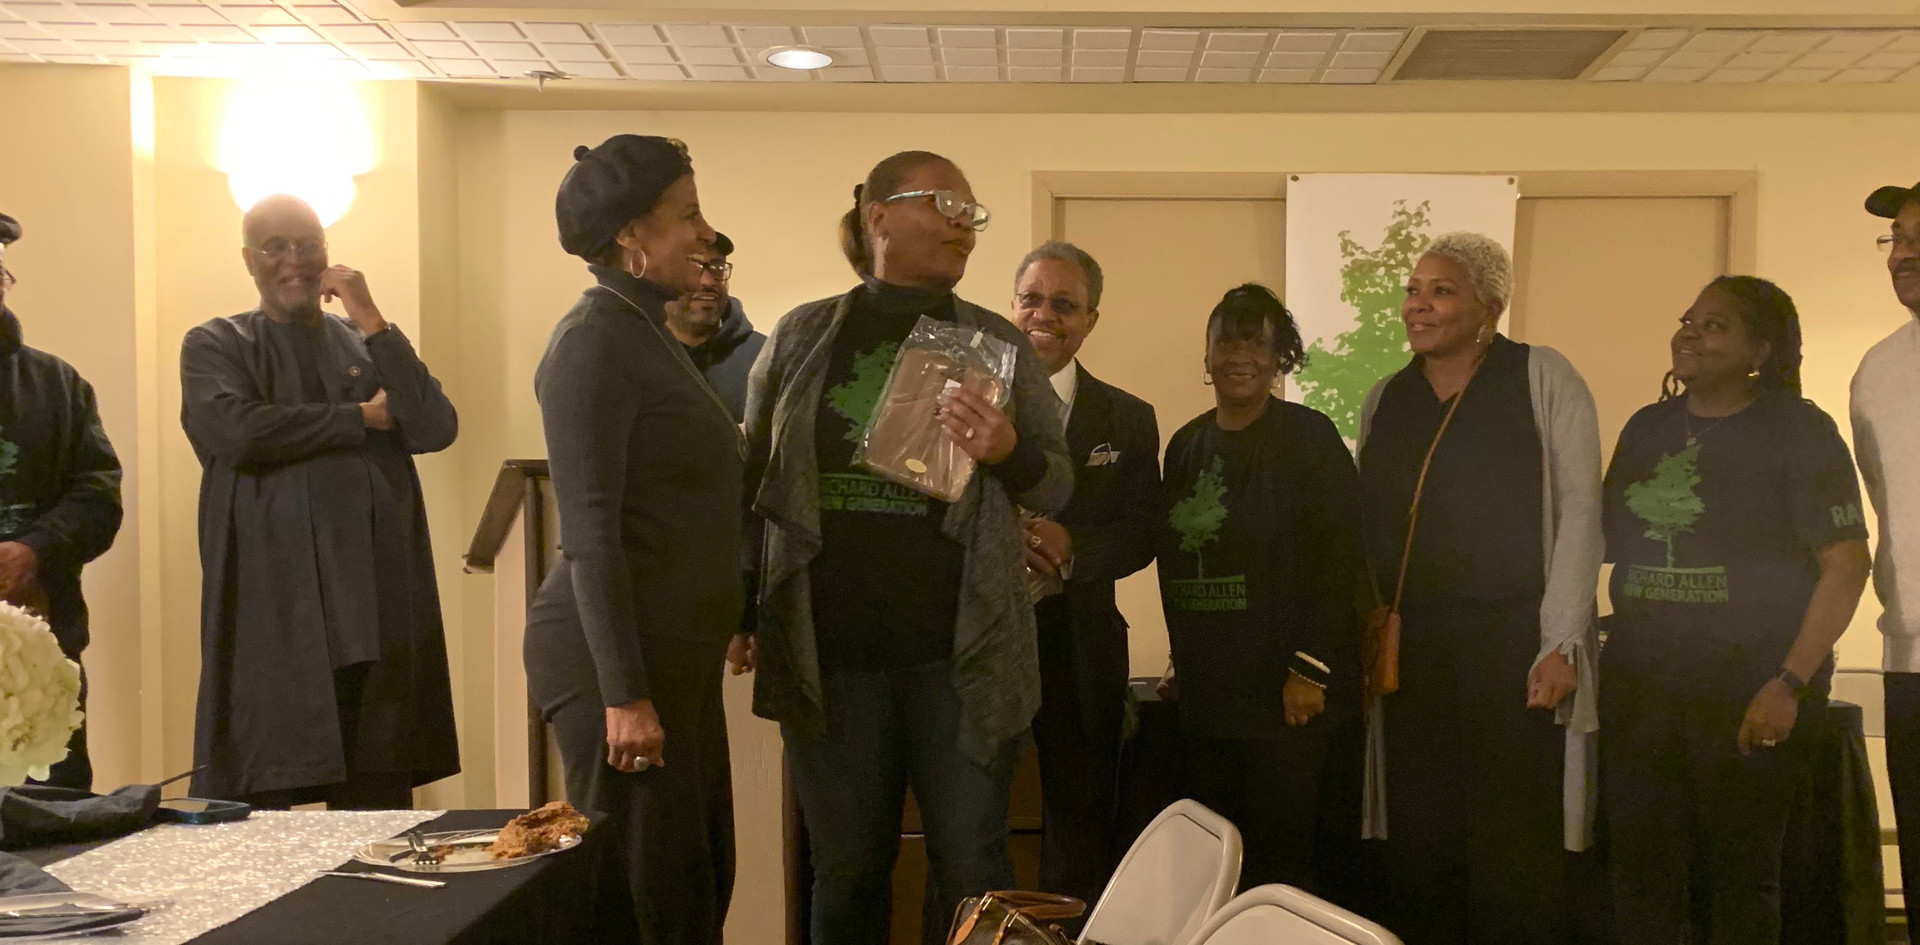 Patricia Marshall Harris, administration director, M3M,(third from left), receives a surprise appreciation award from RANG board members and officers, at the recent Recognition Dinner for the first class of graduates of the RANG/Post Brothers Pre-Apprenticeship Training Program, held recently at the Gladys B. Jacobs Manor, at 1100 Fairmount Avenue.